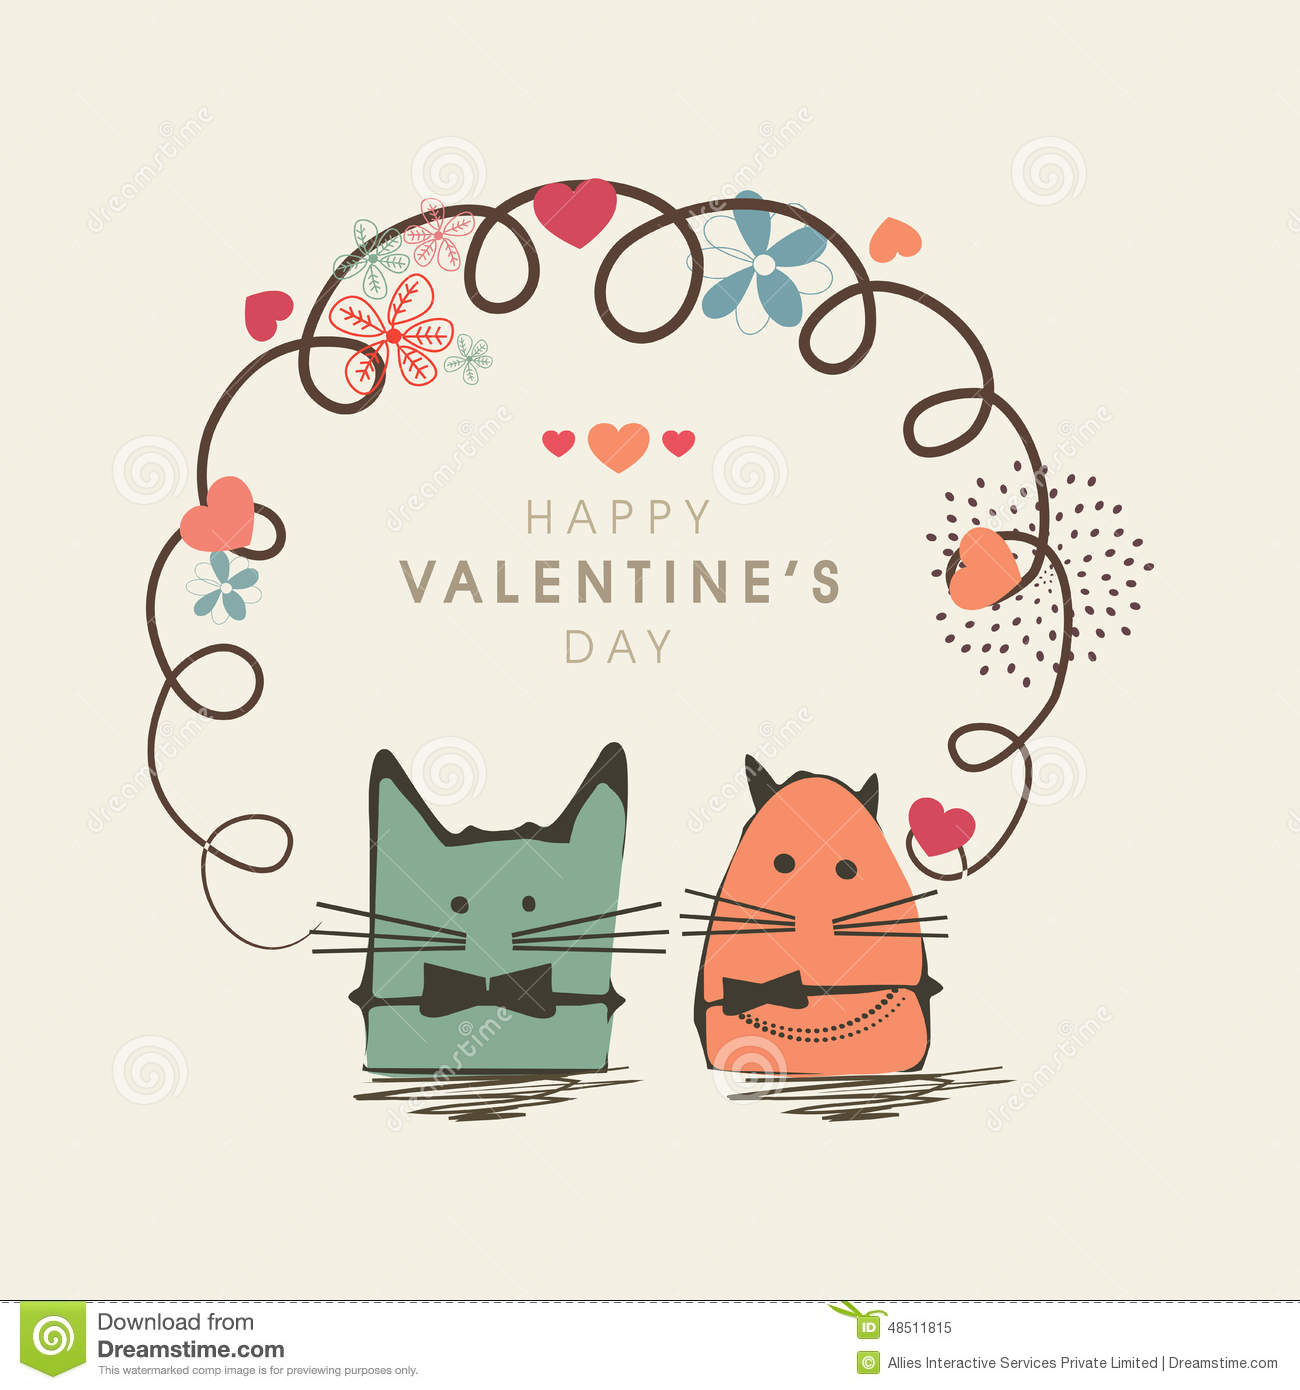 Happy Valentines Day Celebration With Kiddish Cartoon Stock